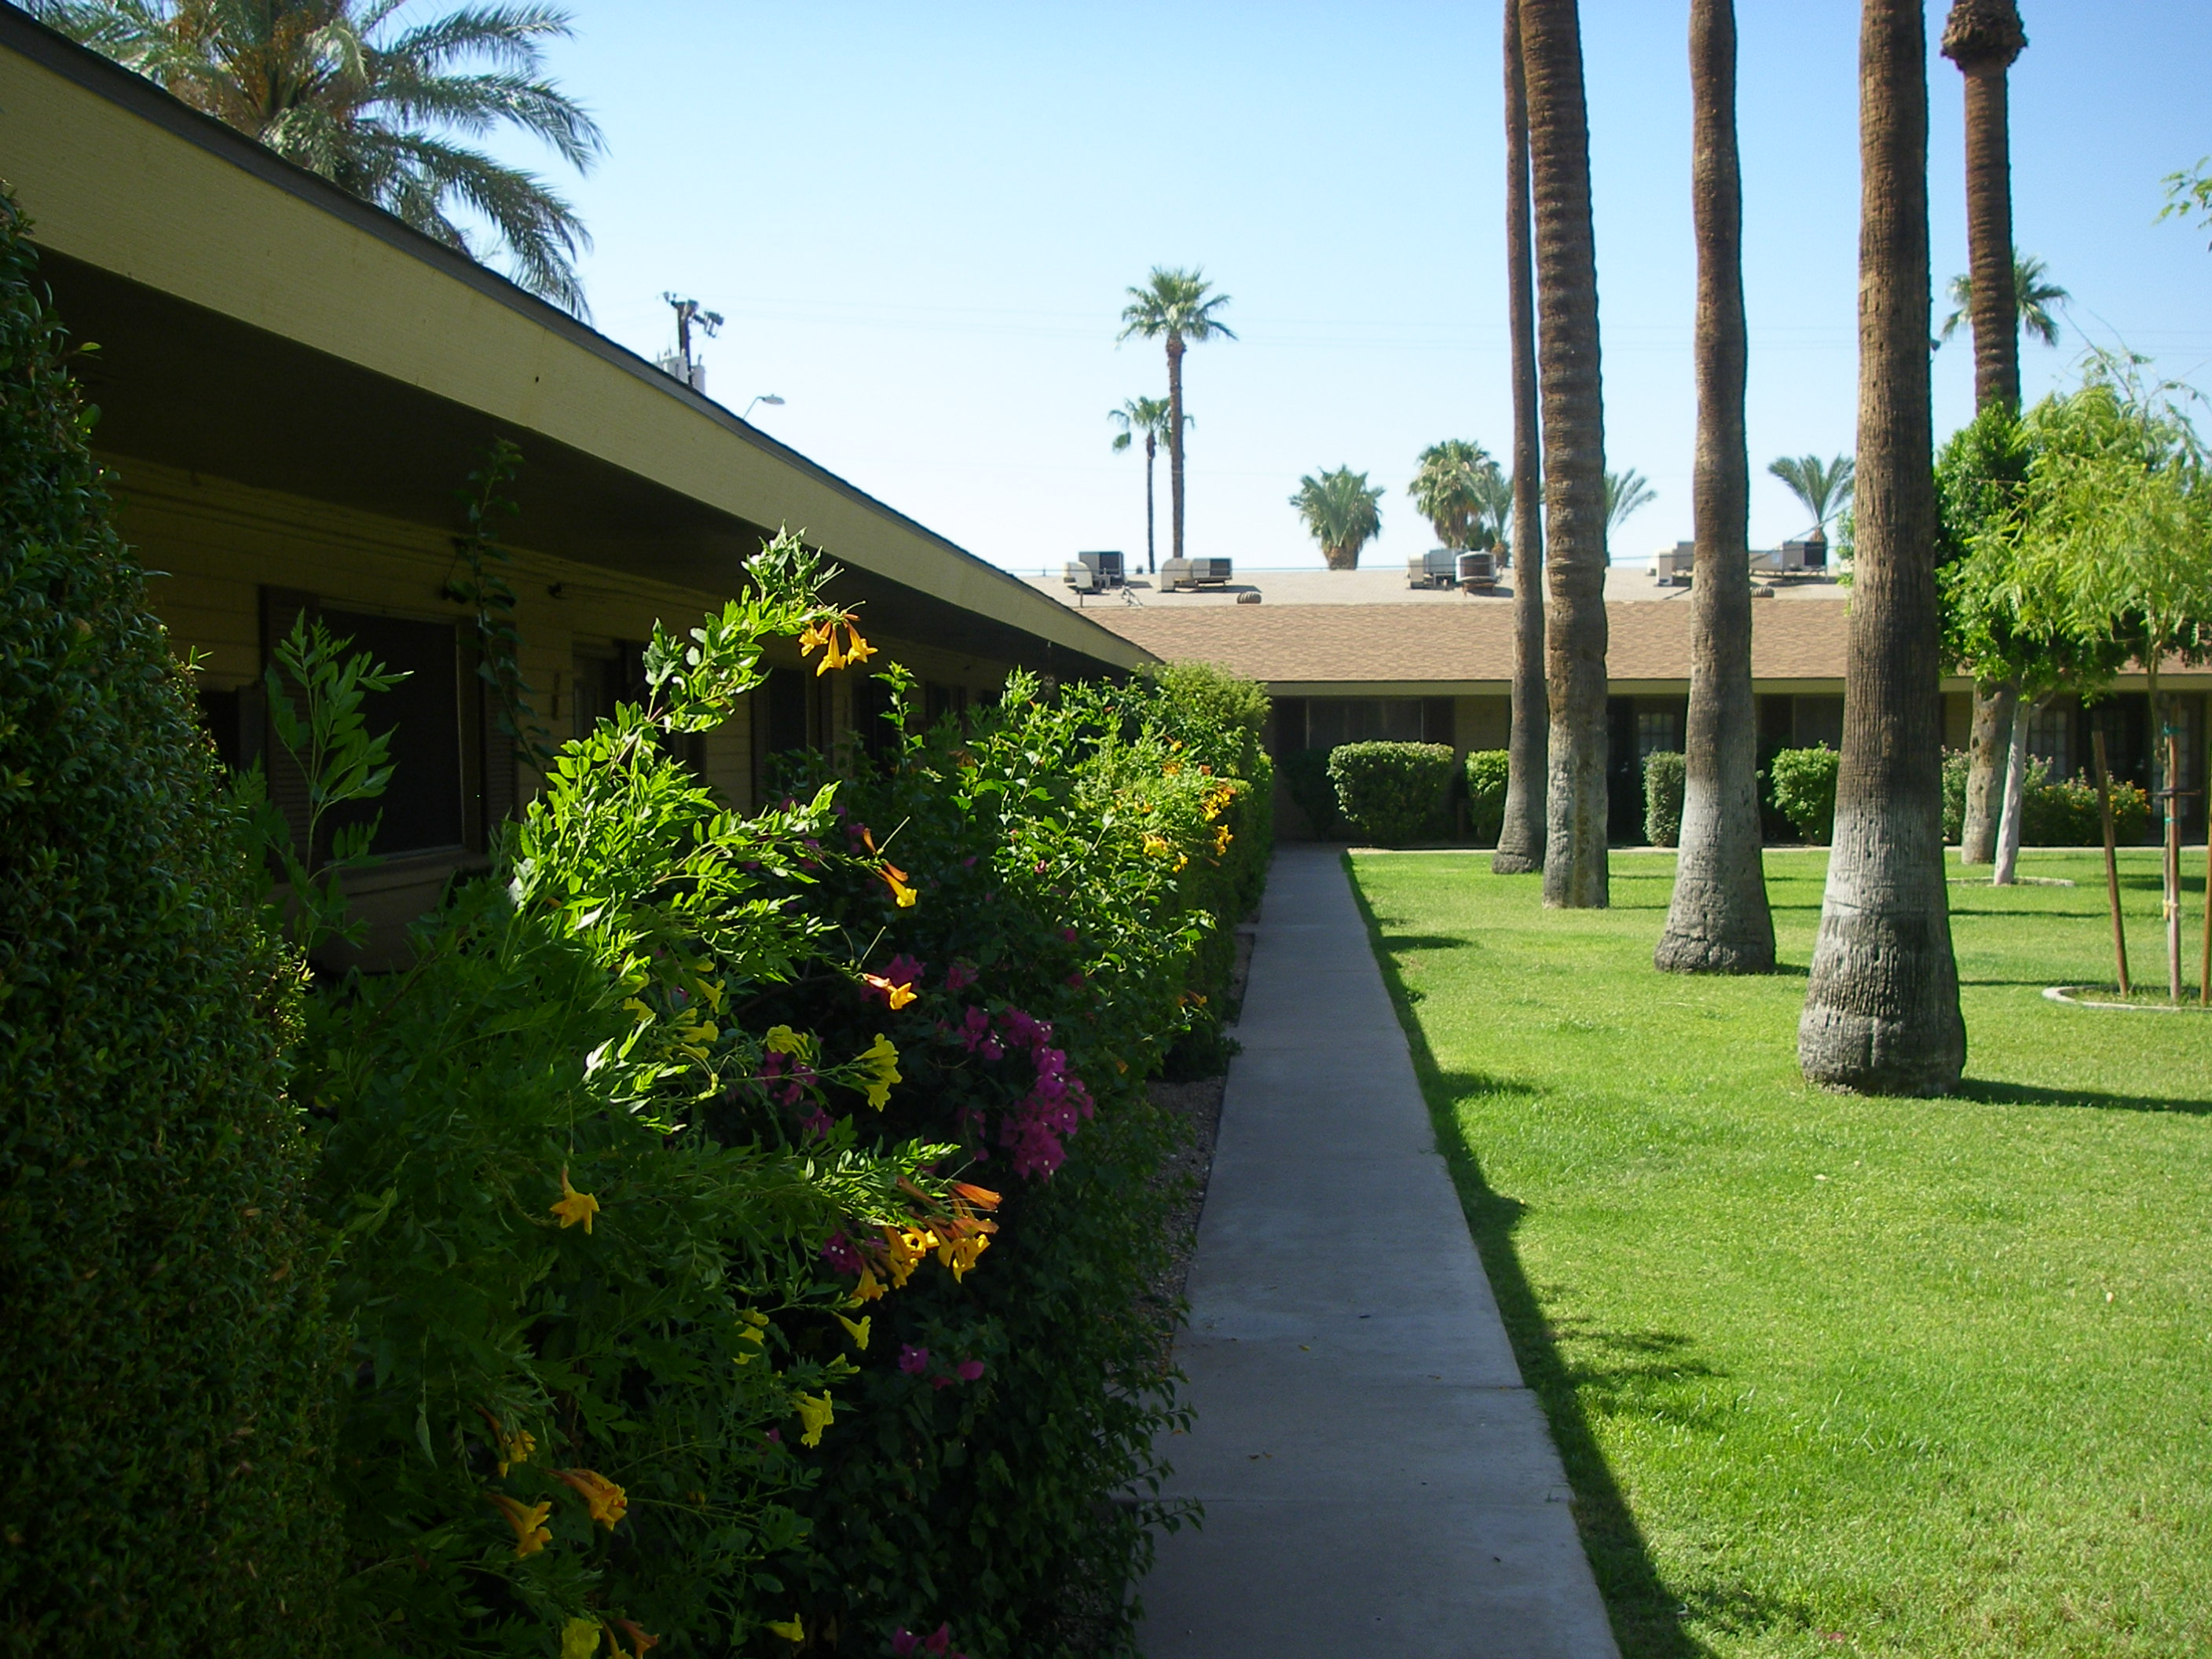 Sidewalk view of courtyard